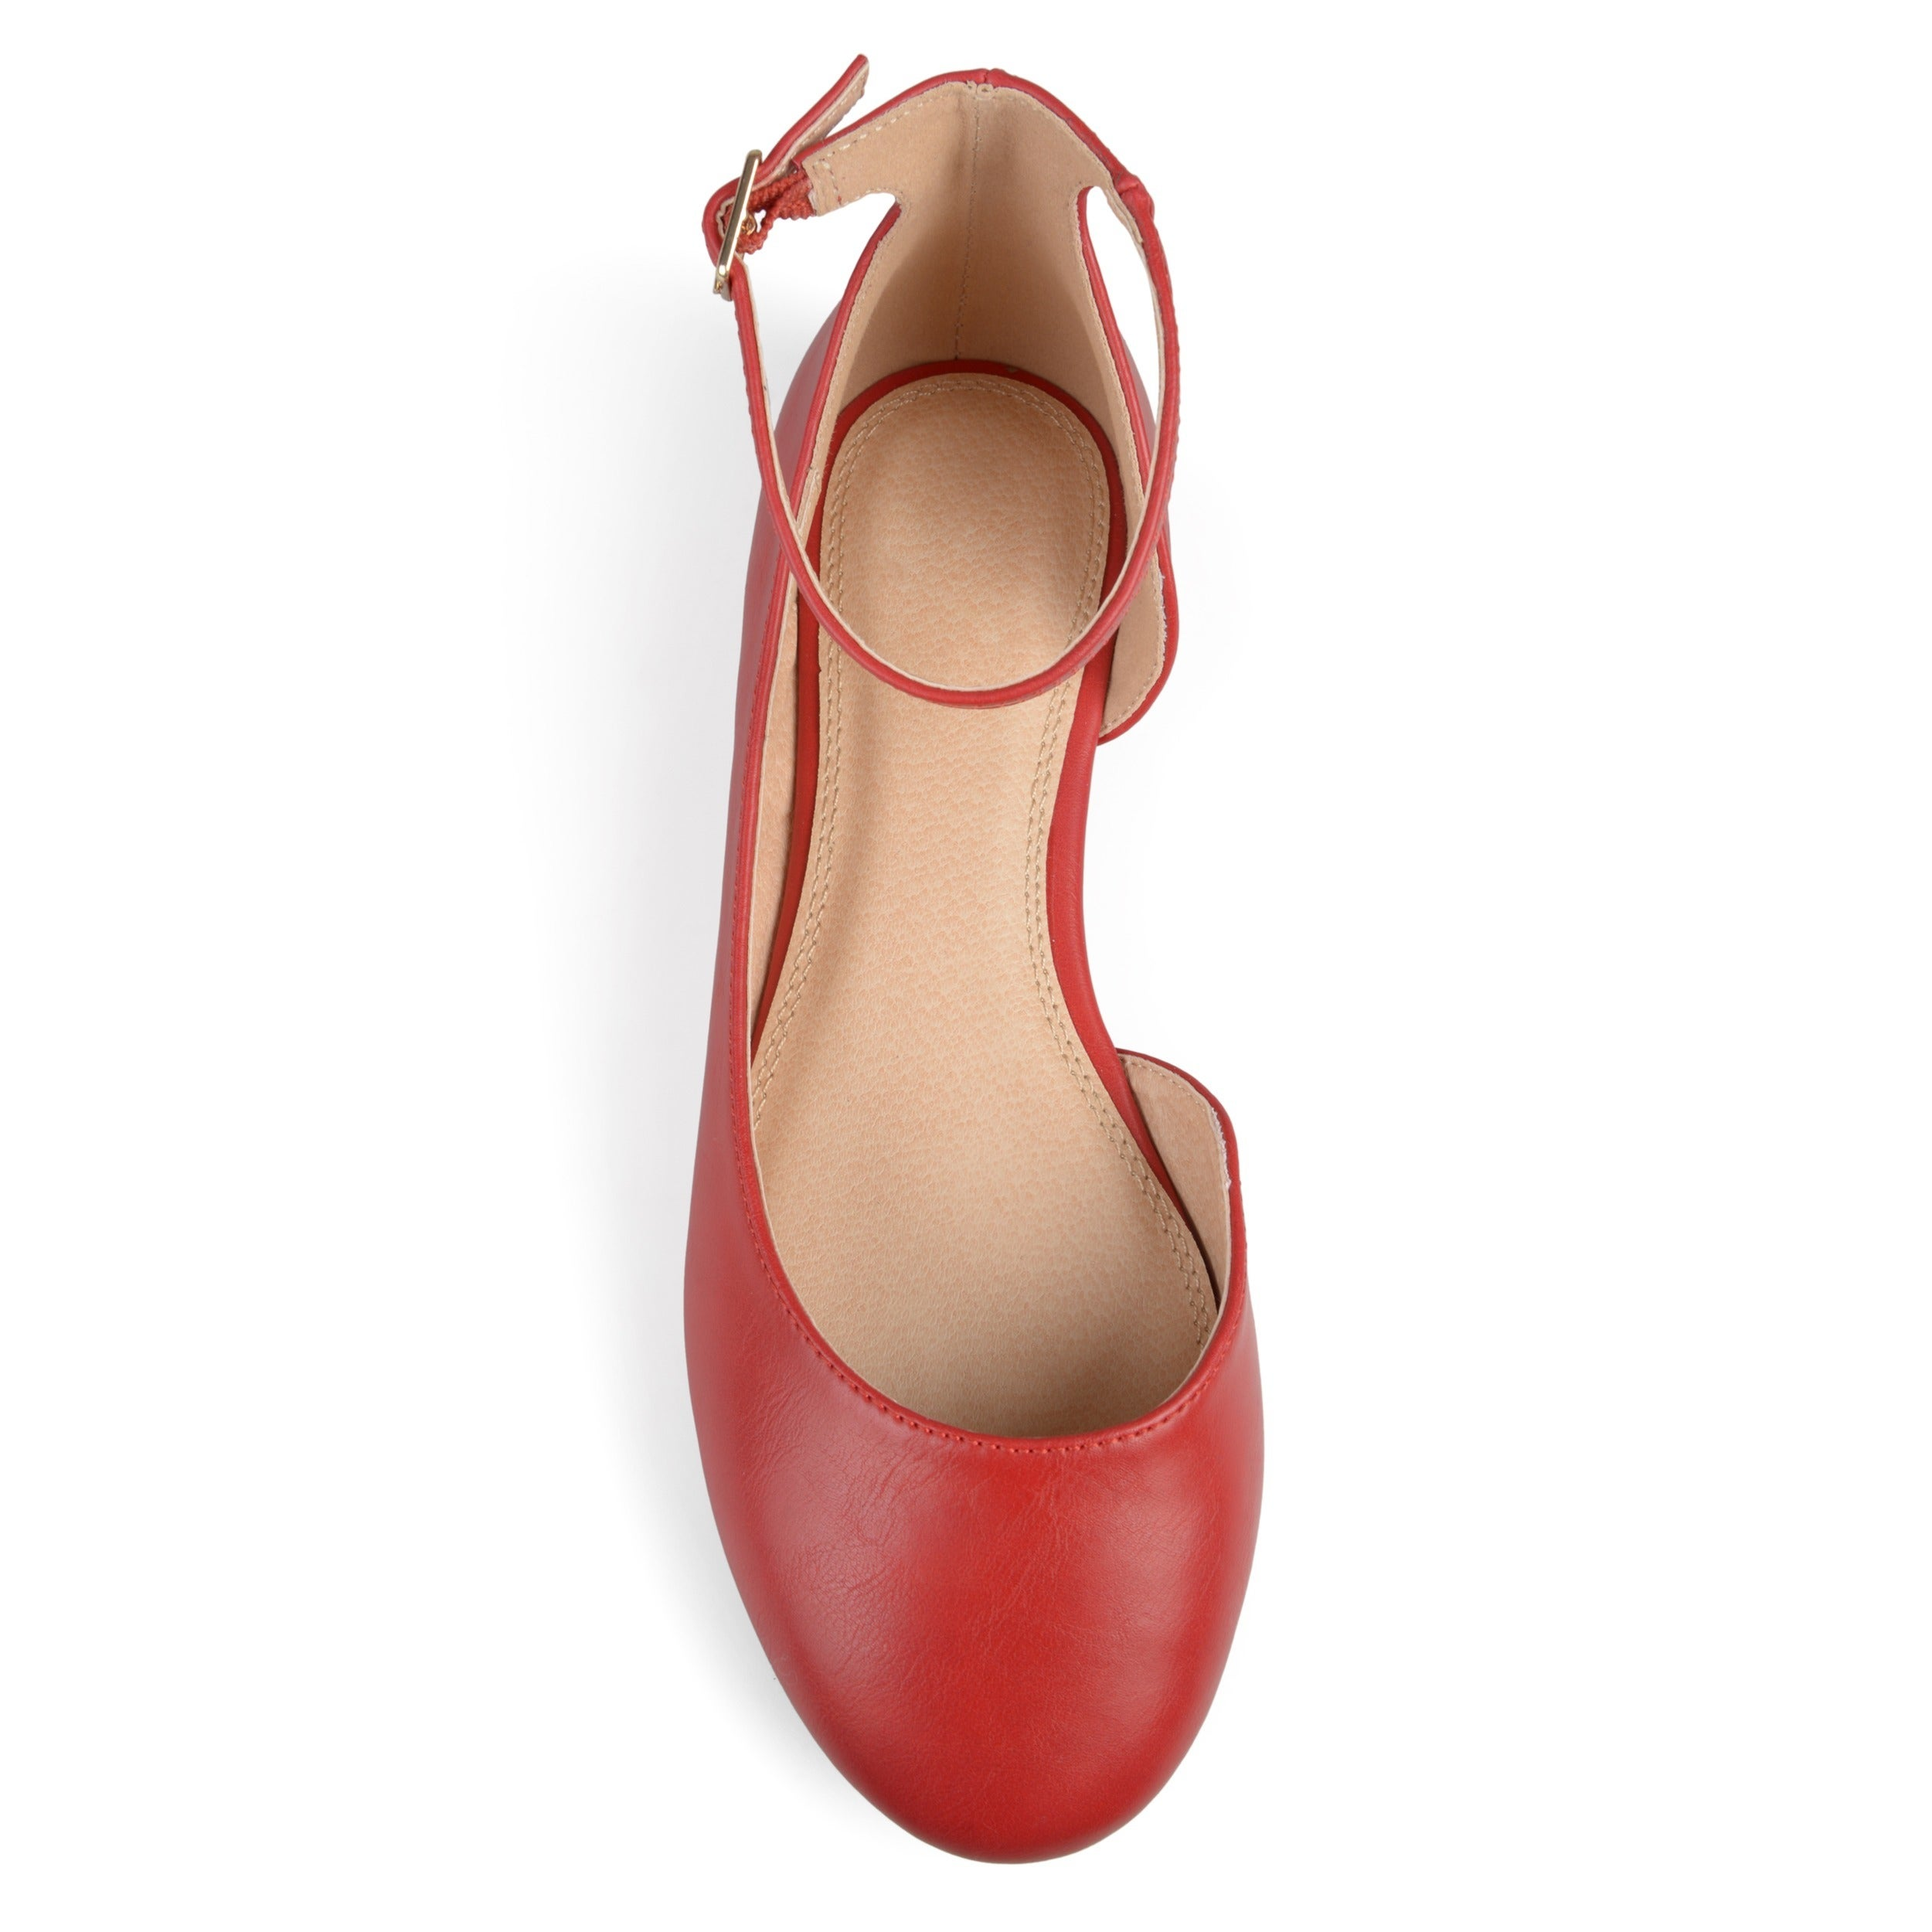 30e374e999e Shop Journee Collection Women s  Astley  Wide Width D orsay Ankle Strap  Round Toe Flats - On Sale - Free Shipping On Orders Over  45 - Overstock -  17351600